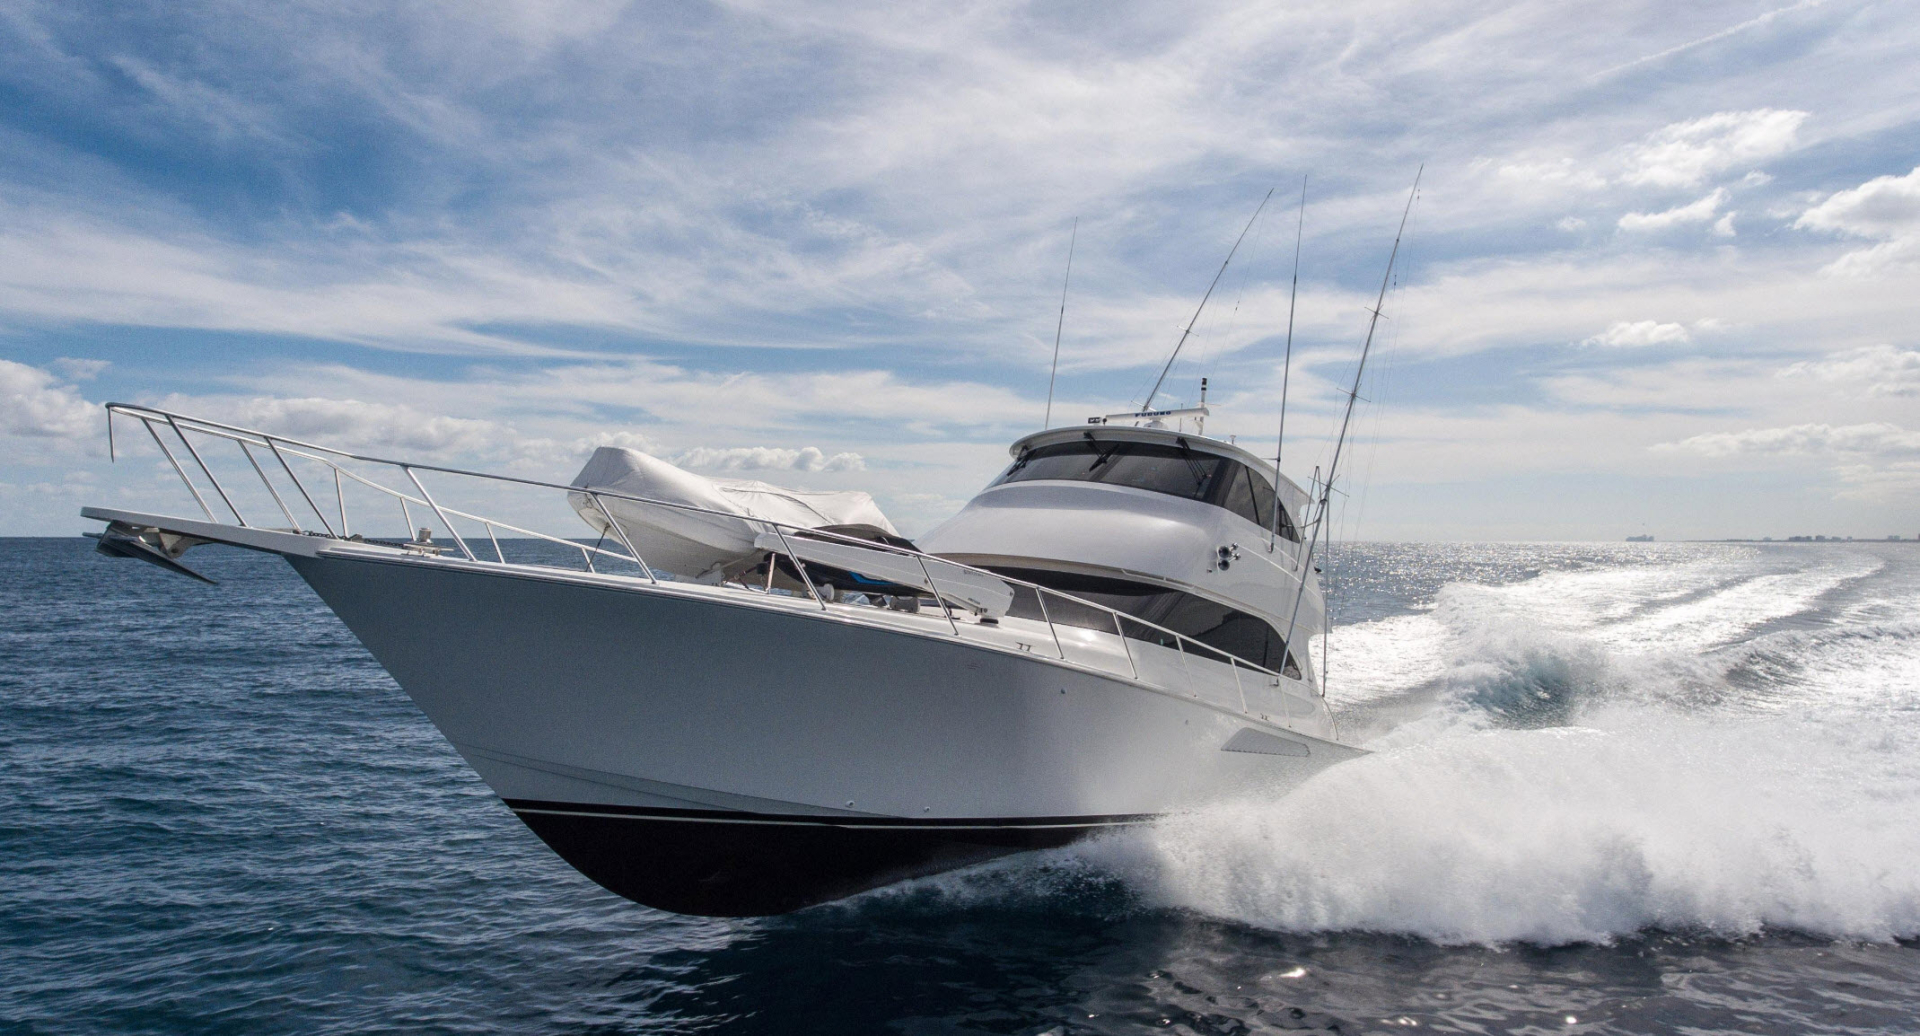 Used Viking Sportfish And Motor Yachts For Sale | United